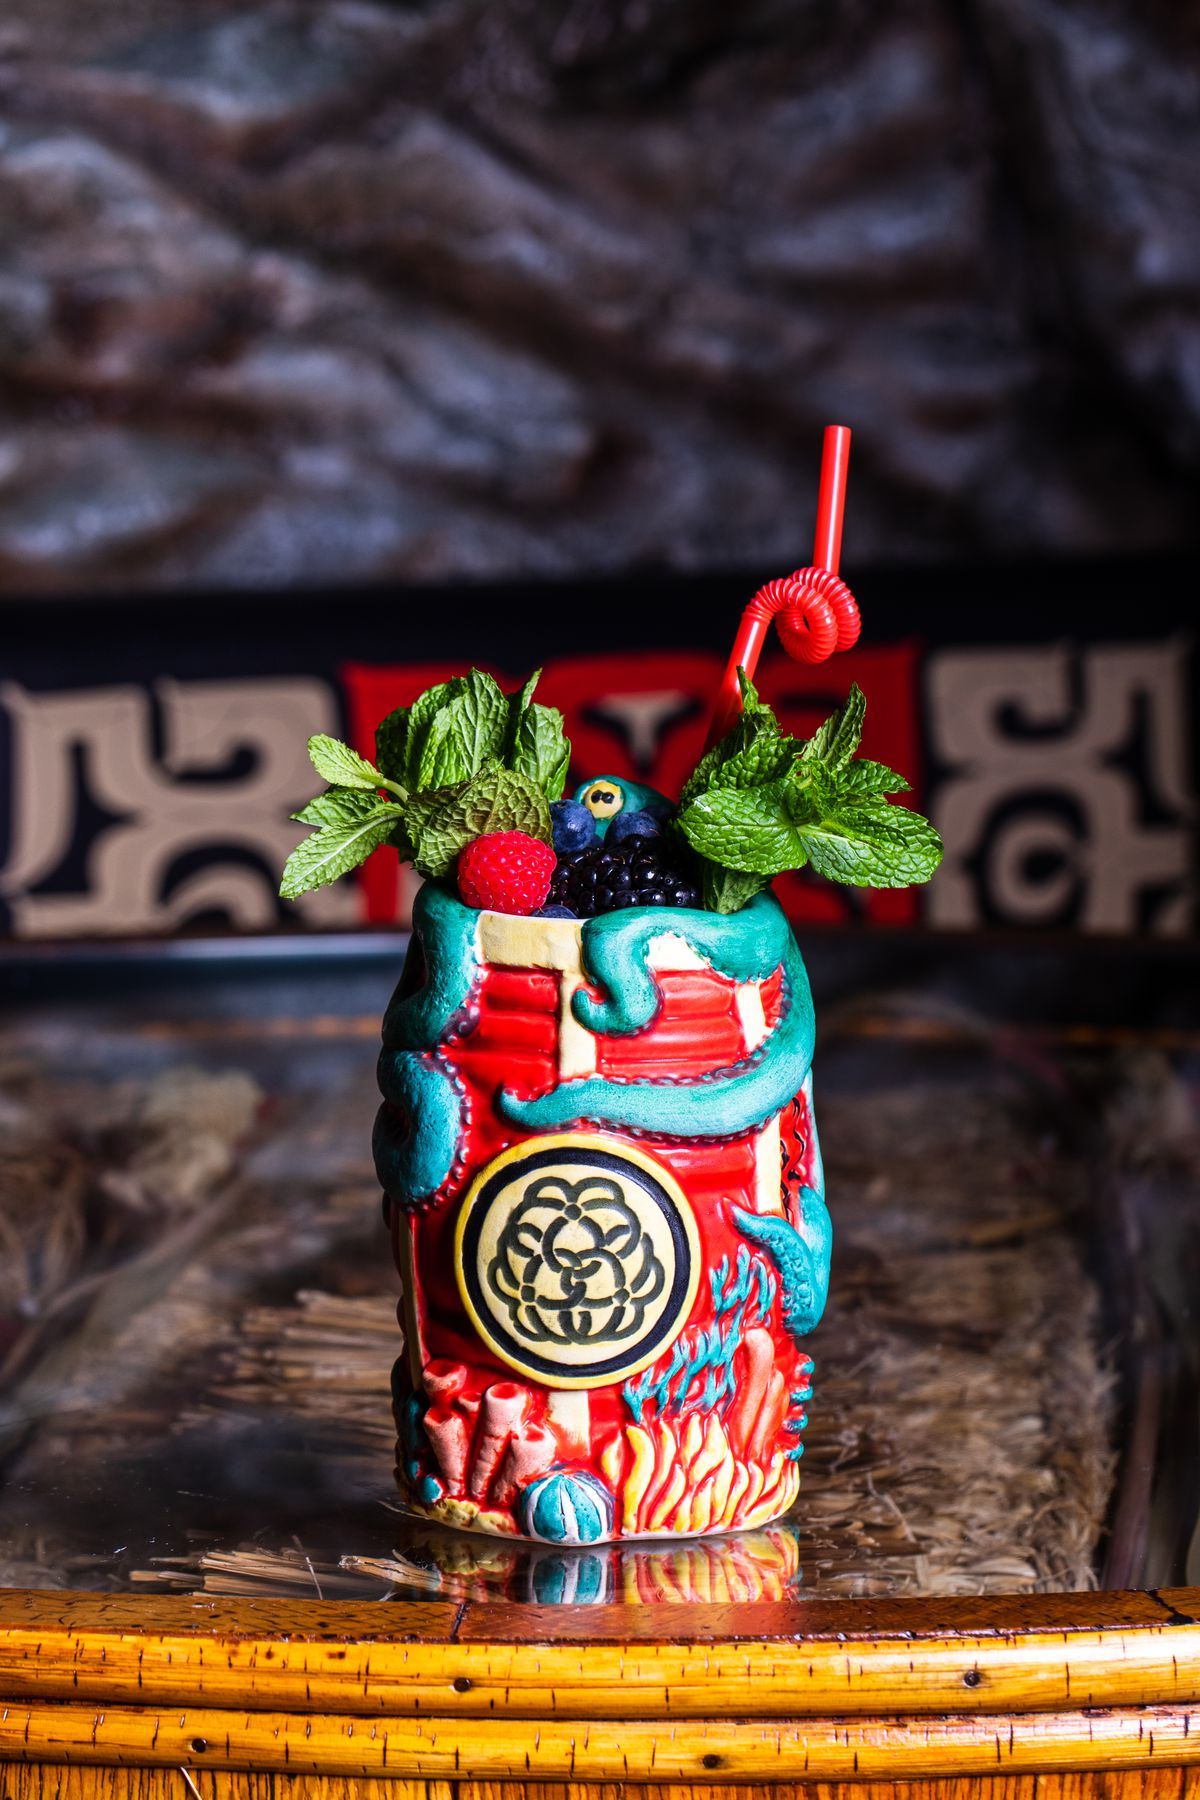 A mug in the shape of a red barrel is hugged by tentacles and garnished with green mint, berries, and a red twisty straw.